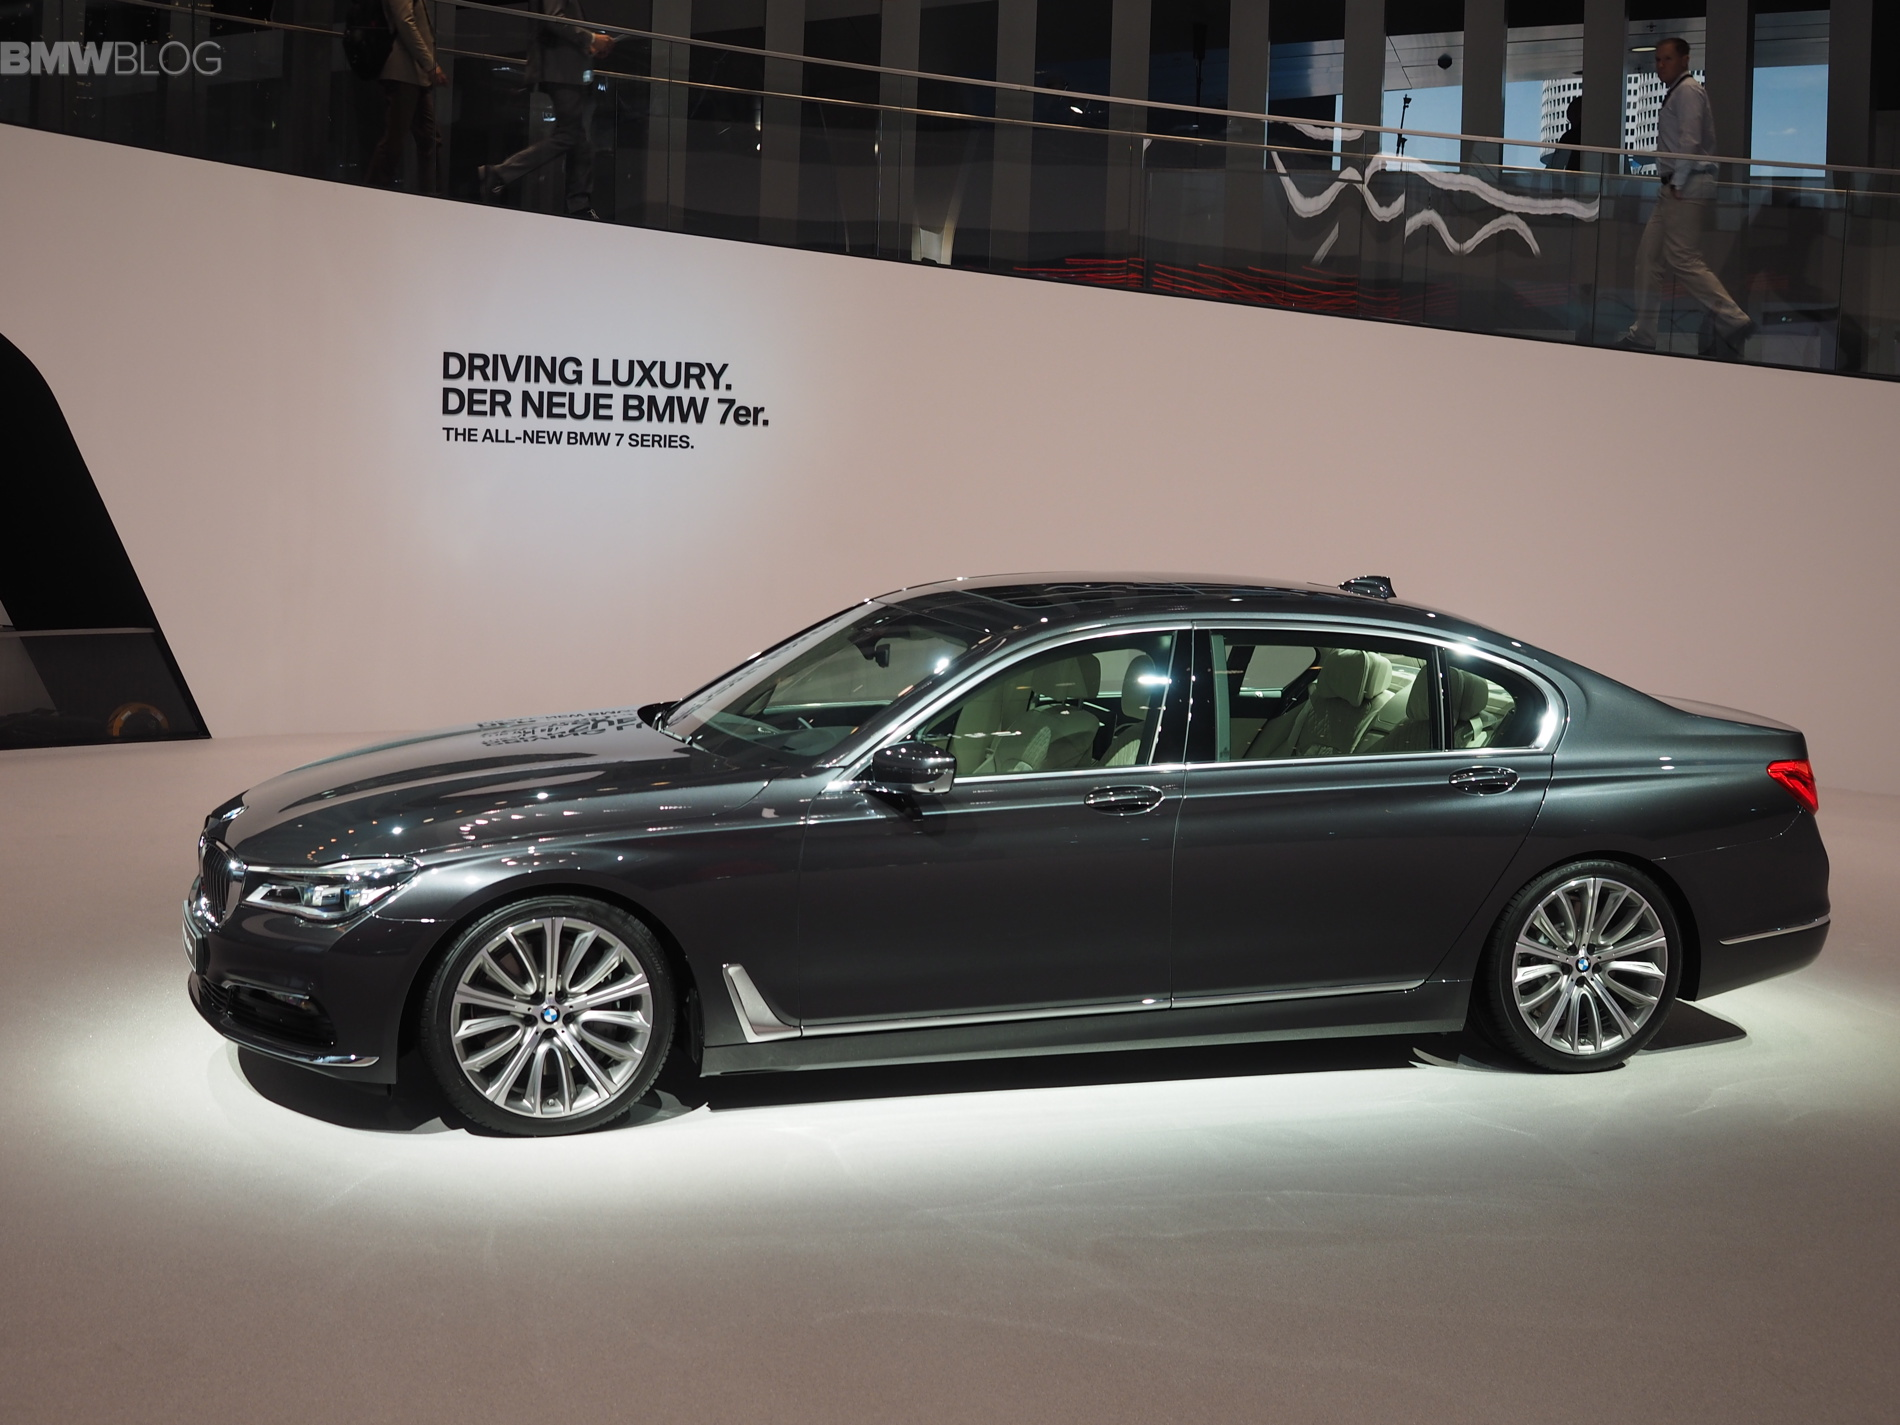 2011 BMW Alpina B7 or 2016 BMW 7 Series